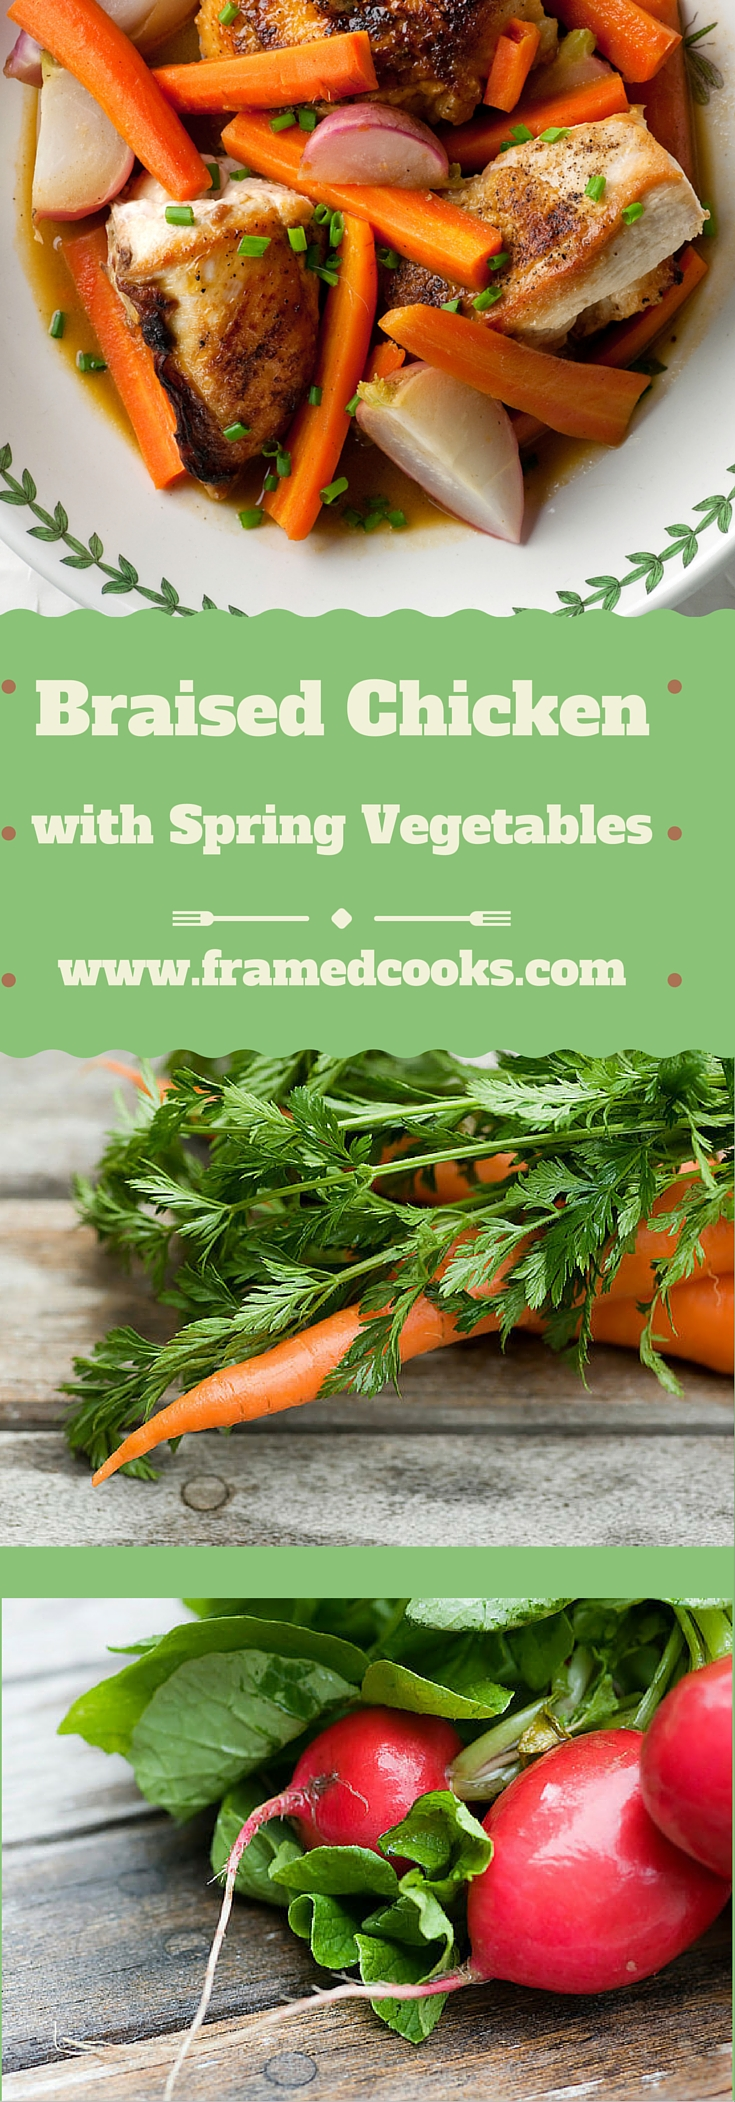 Chicken, radishes and carrots simmer up tenderly in this easy recipe for braised chicken with spring vegetables.  Think spring!